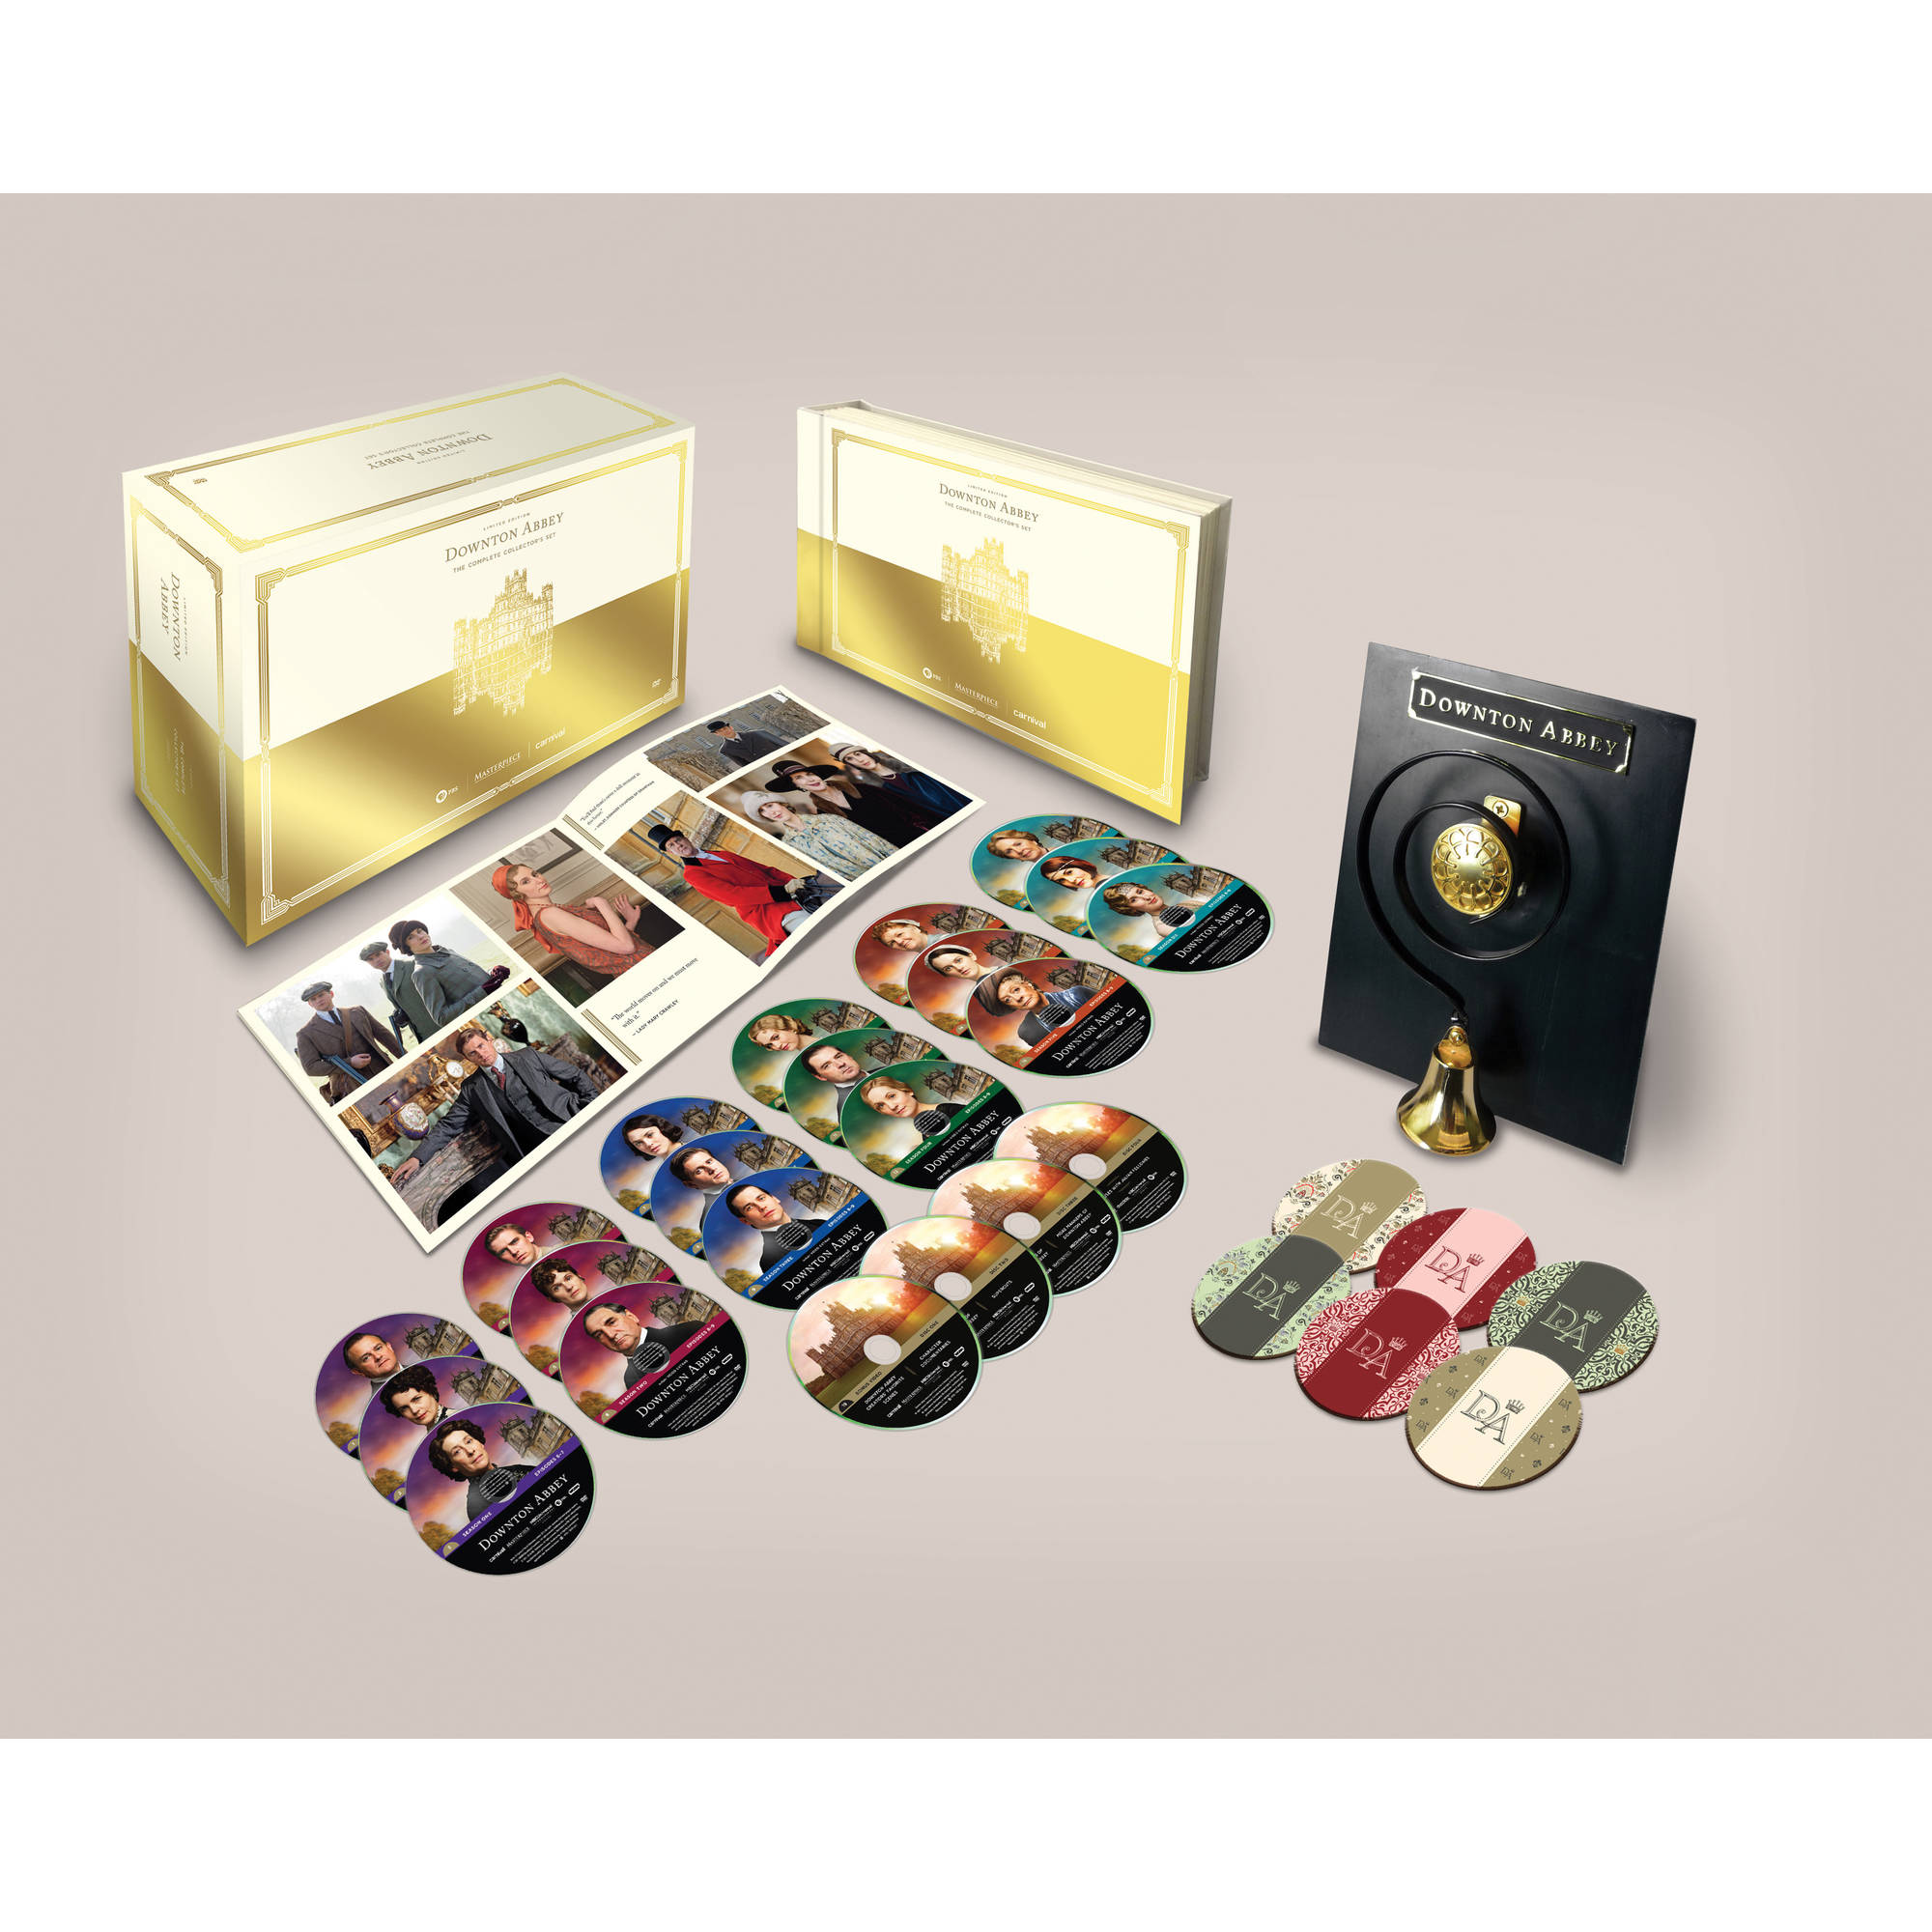 Downton Abbey: The Complete Collector's Set (Limited Edition)